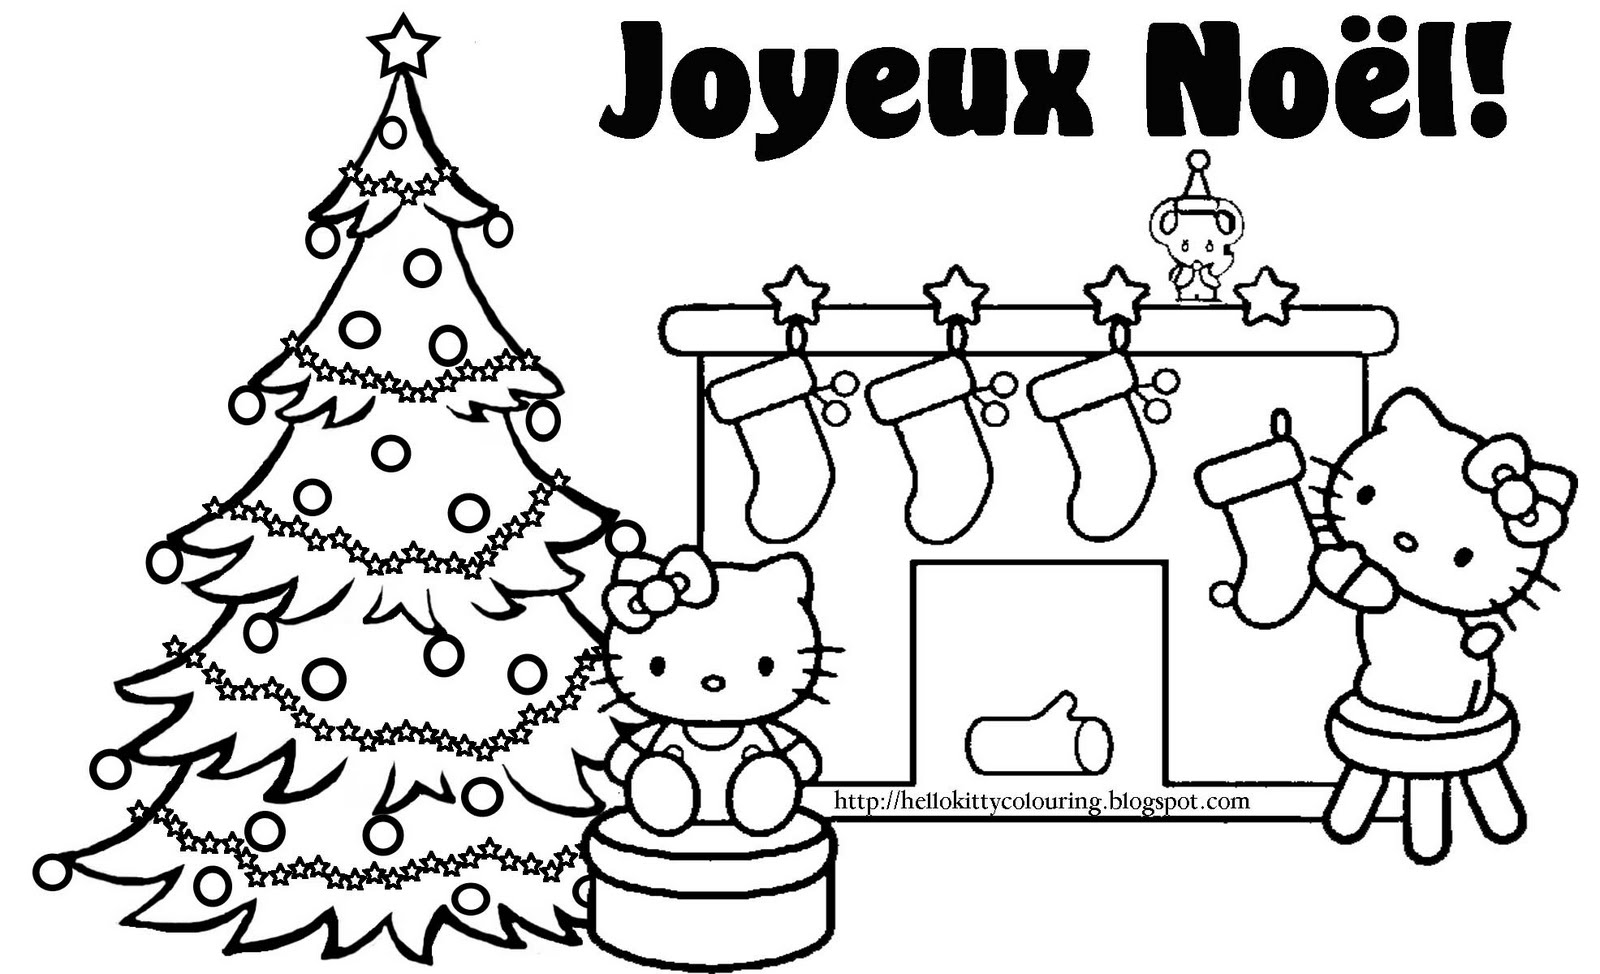 hello kitty christmas coloring pictures free coloring pages printable pictures to color kids pictures christmas kitty hello coloring